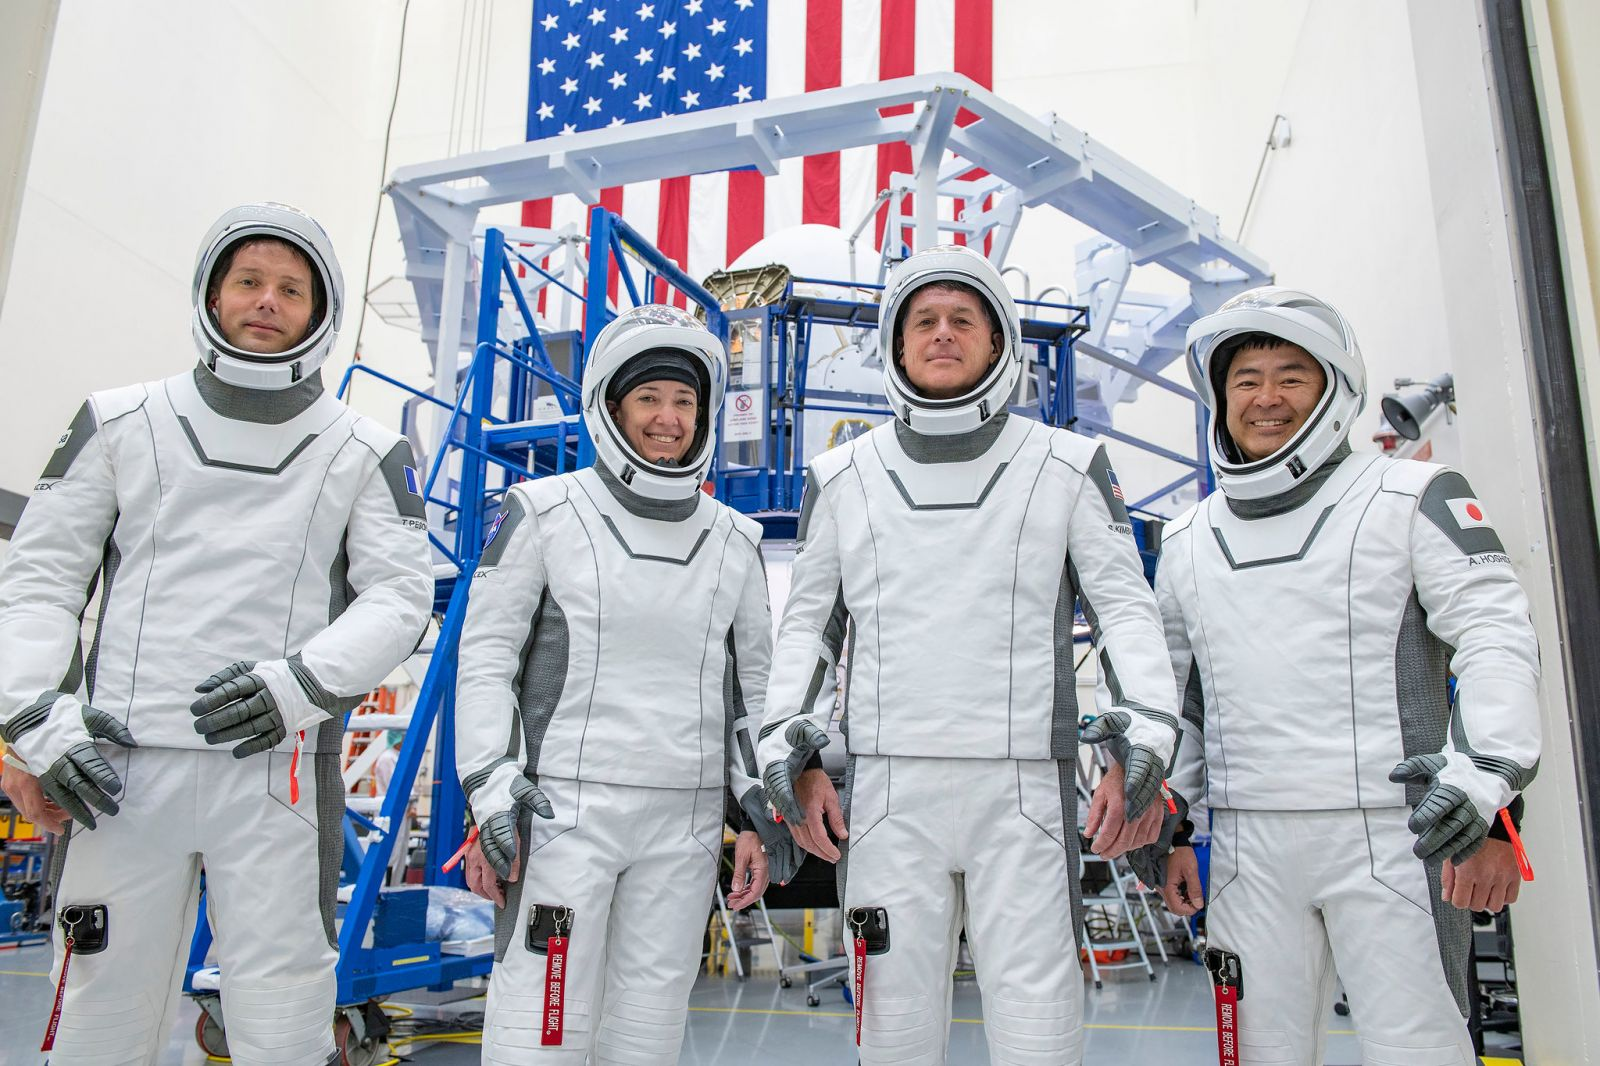 The Crew-2 astronauts seen in front of Crew Dragon Endeavour. From left to right: ESA astronaut Thomas Pesquet, NASA astronauts Megan McArthur and Shane Kimbrough, and Japanese astronaut Akihiko Hoshide. Credit: SpaceX